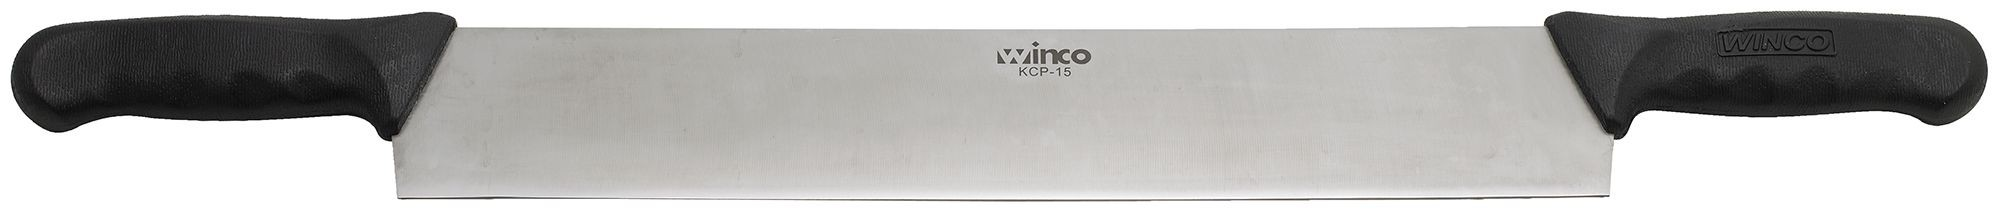 Winco KCP-15 Cheese Knife Double with Polypropylene Handles 15""